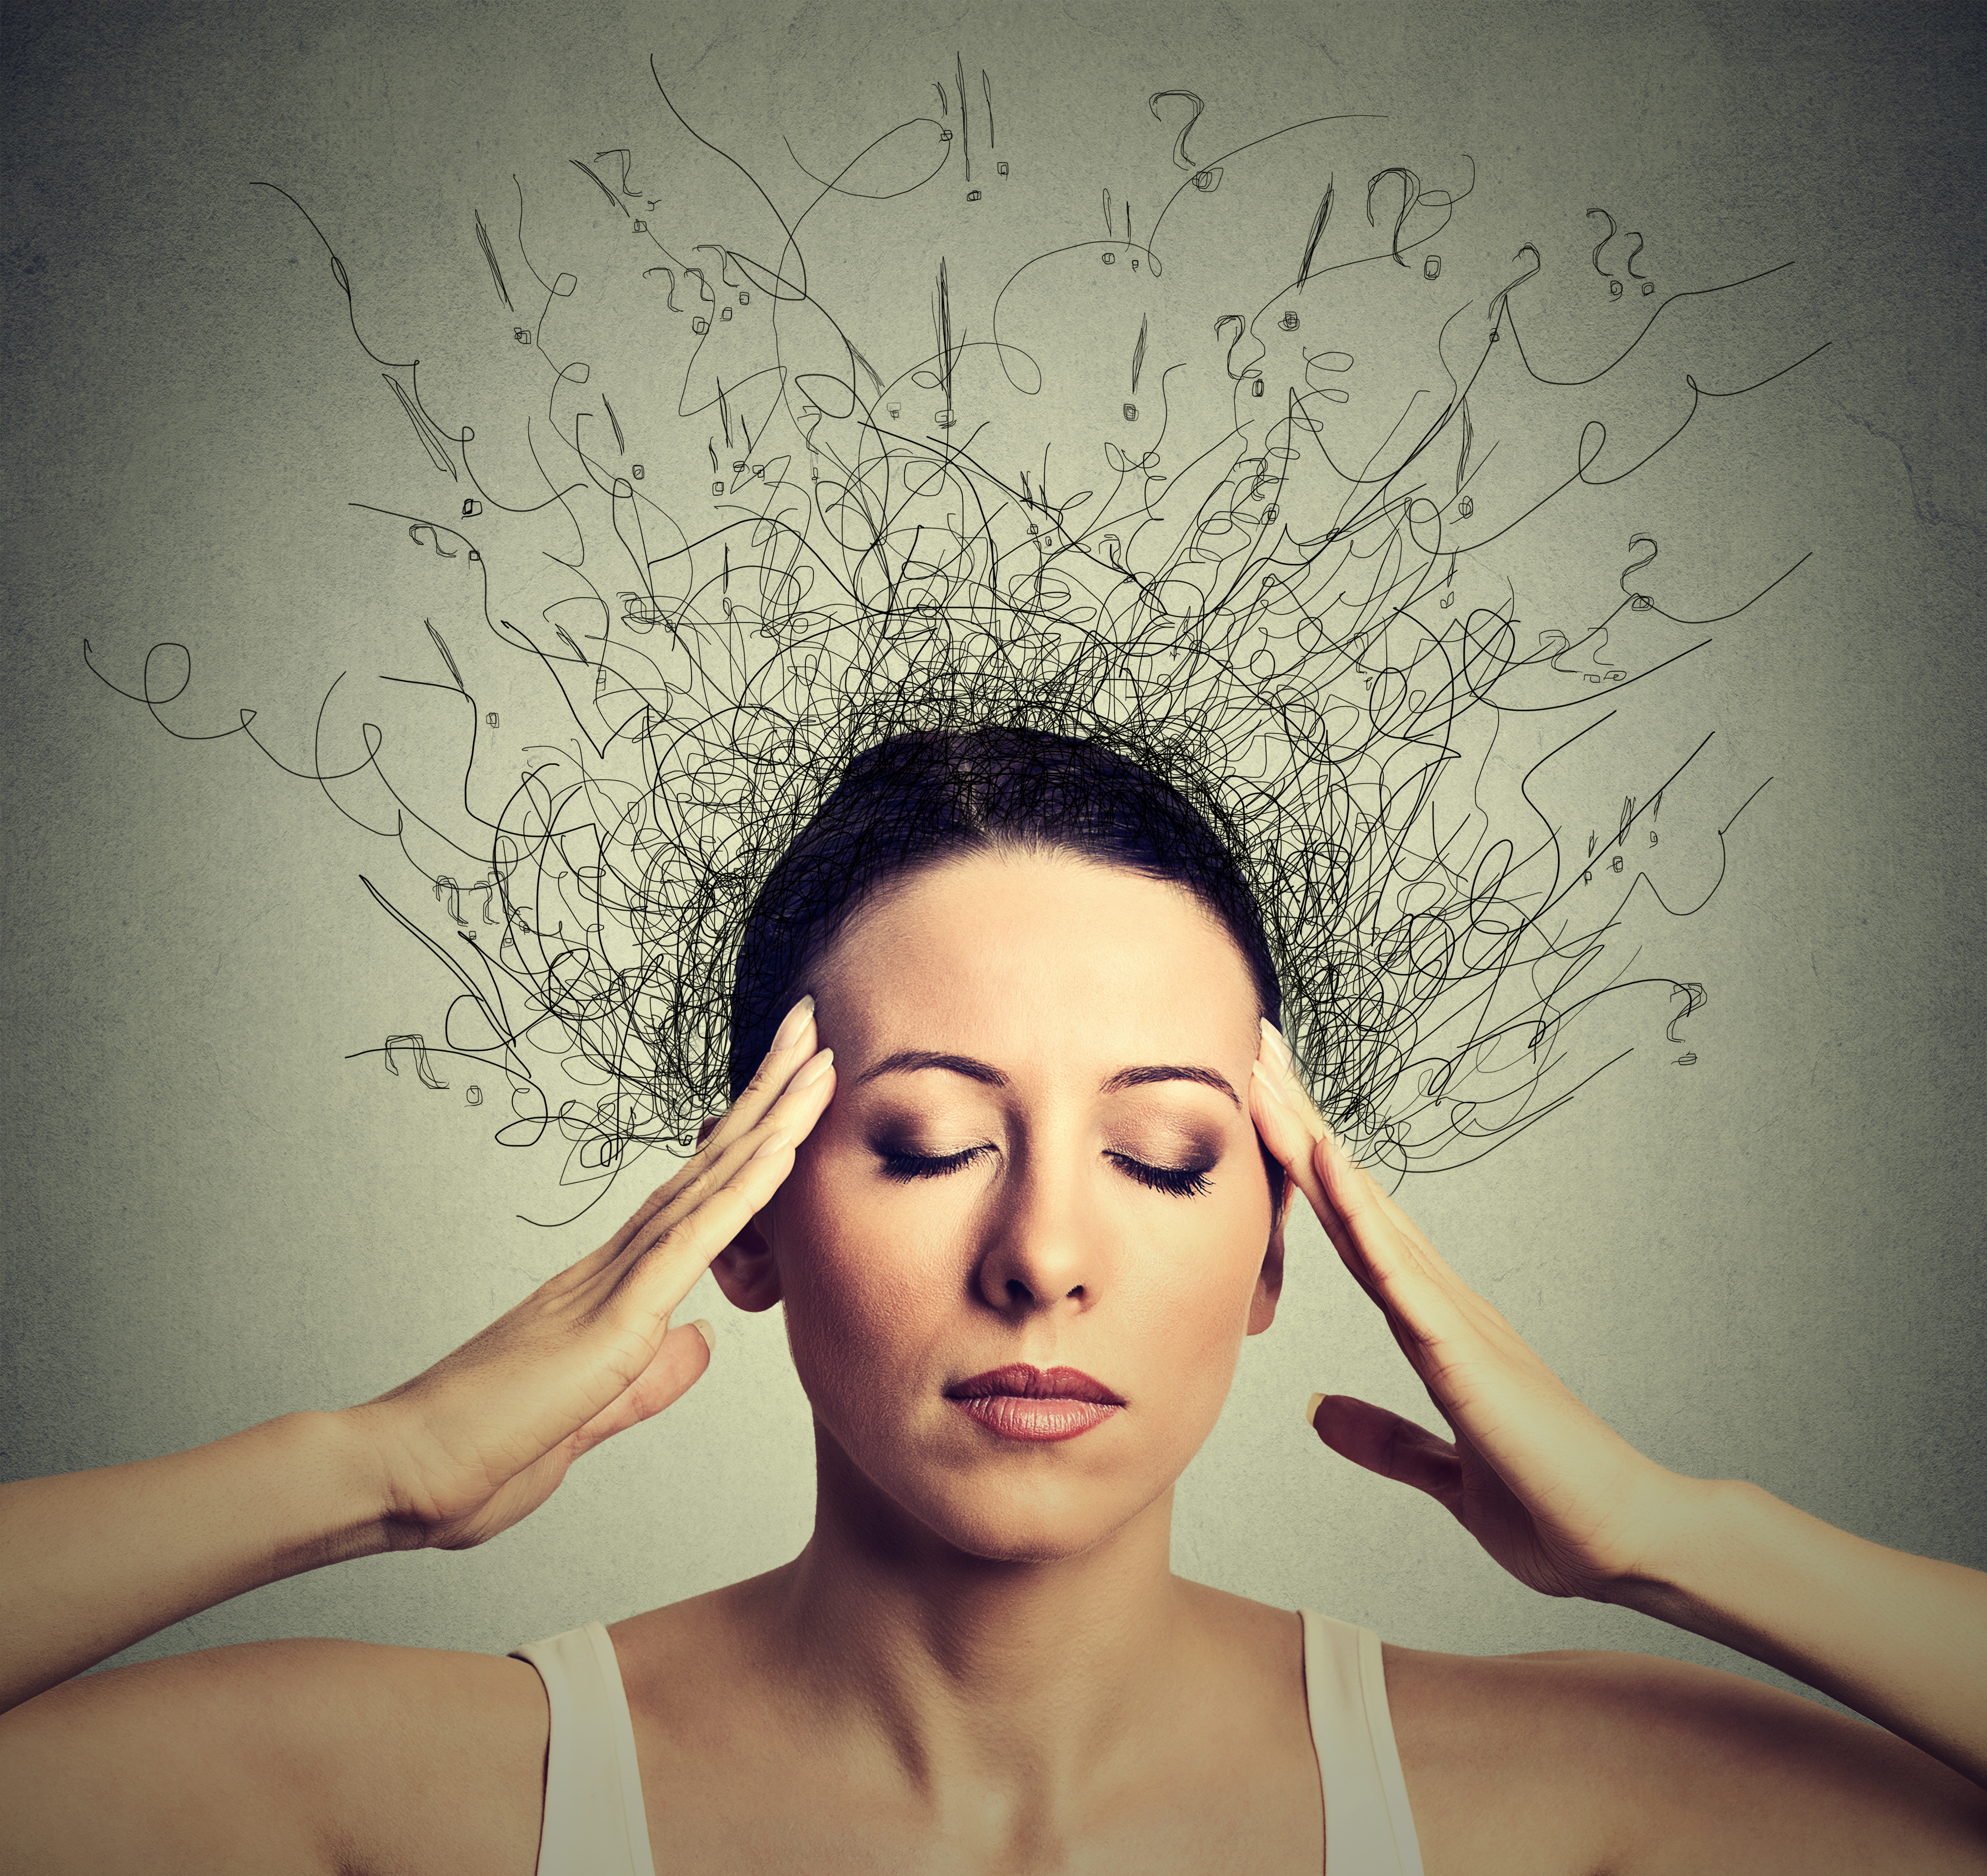 Complementary medicine can help improve your memory